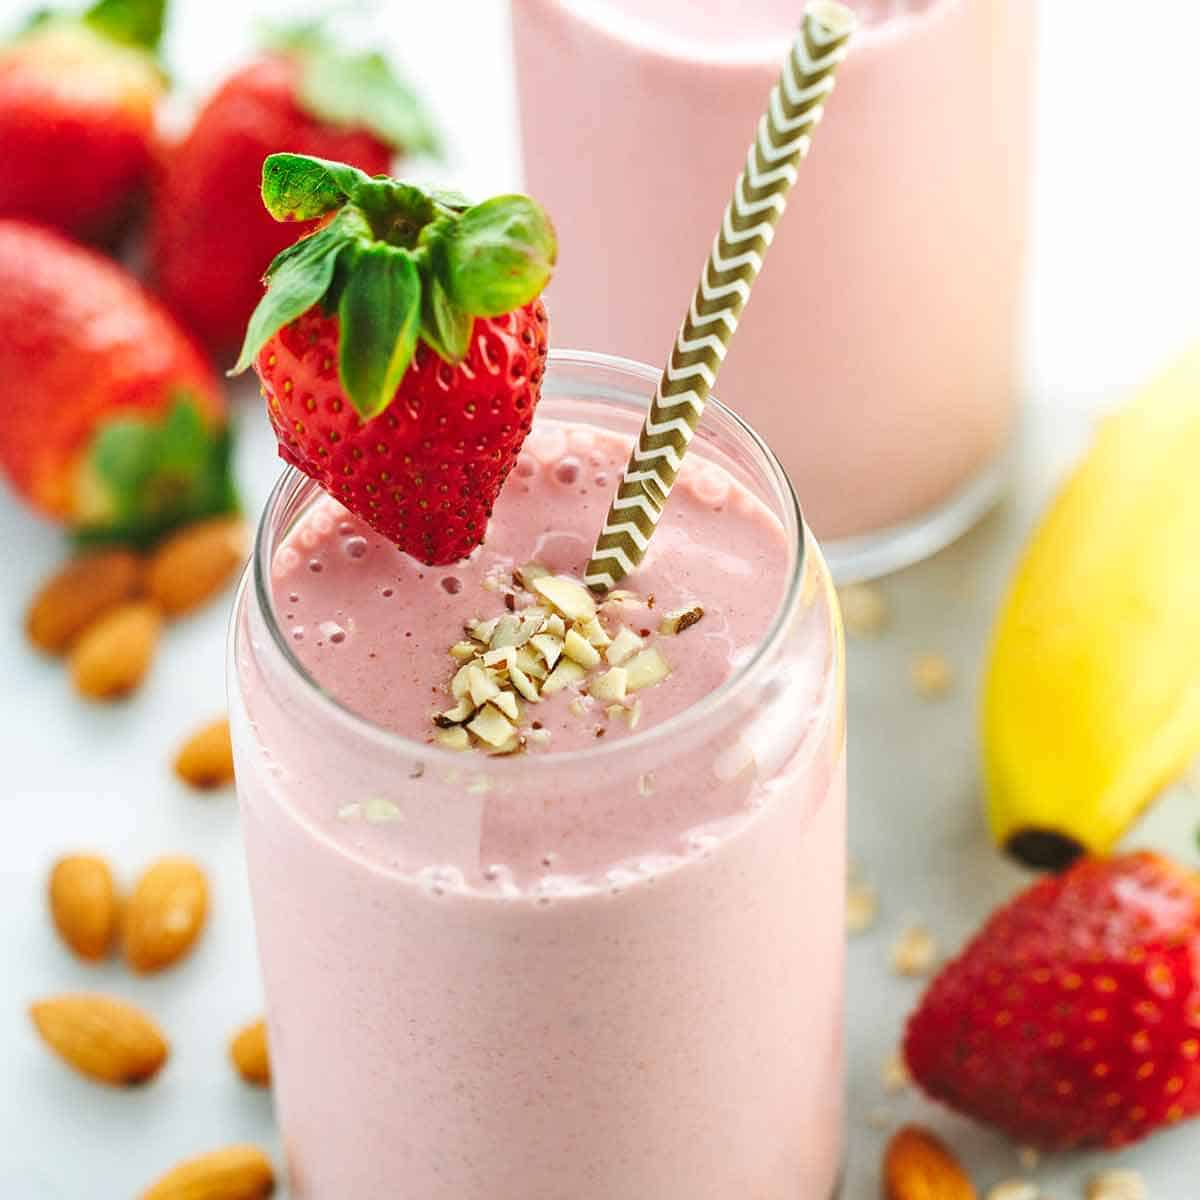 healthy-fruit-smoothie-recipe-with-strawberry-and-banana-1200